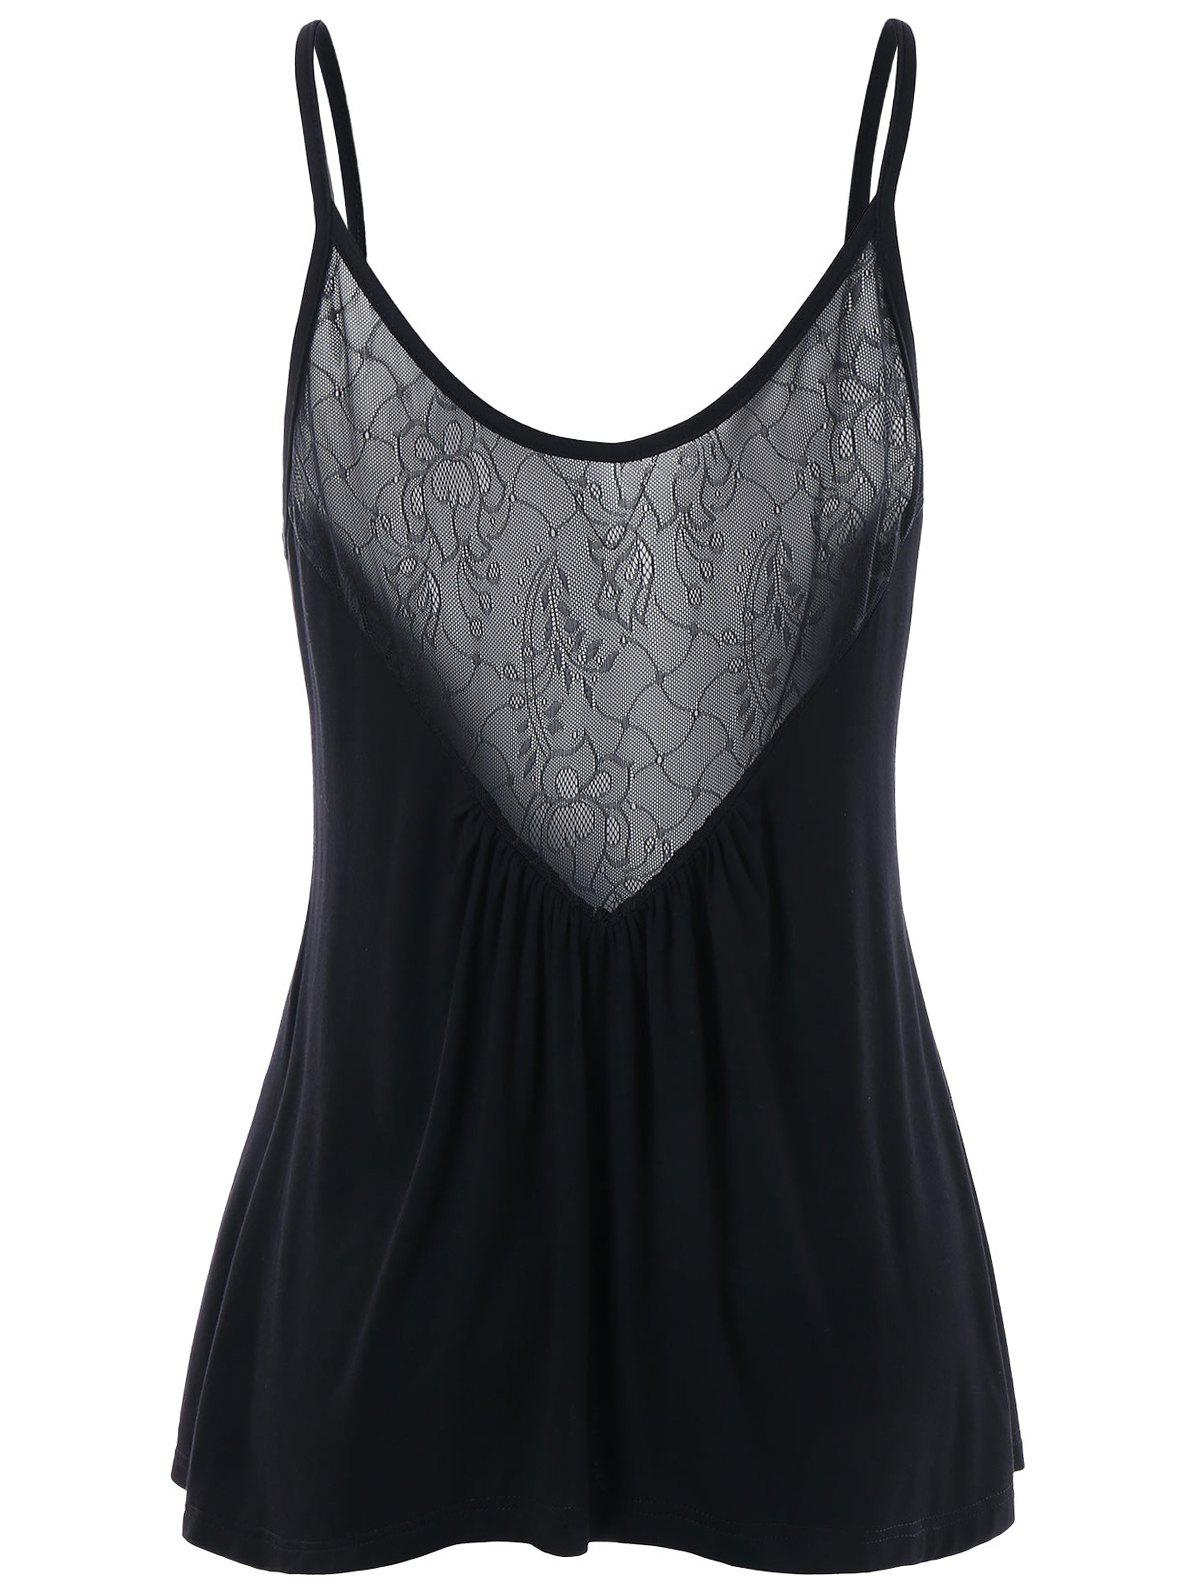 Lace Panel Swing Camisole dual straps lace camisole